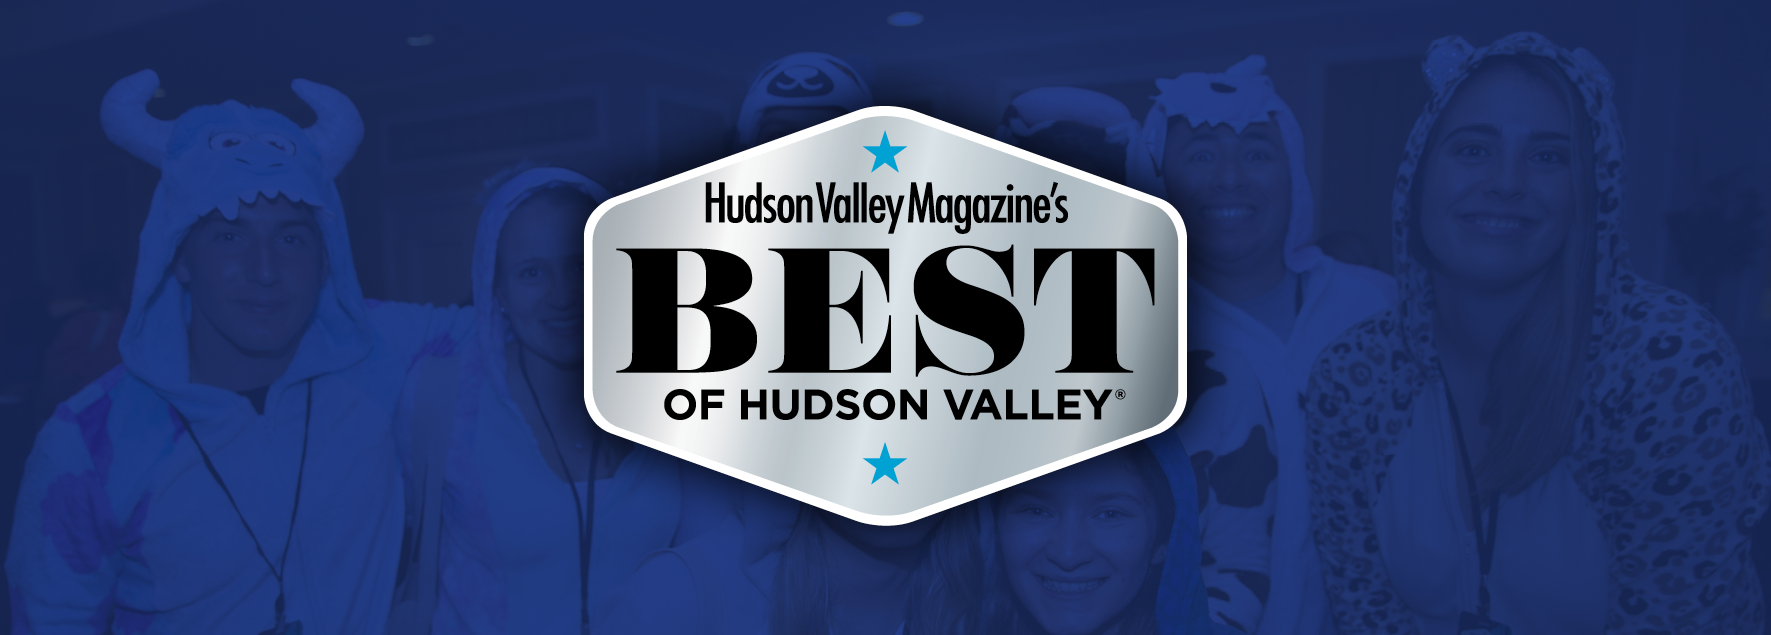 Tickets for 2020 Best of Hudson Valley Services Winner in Fishkill from ShowClix